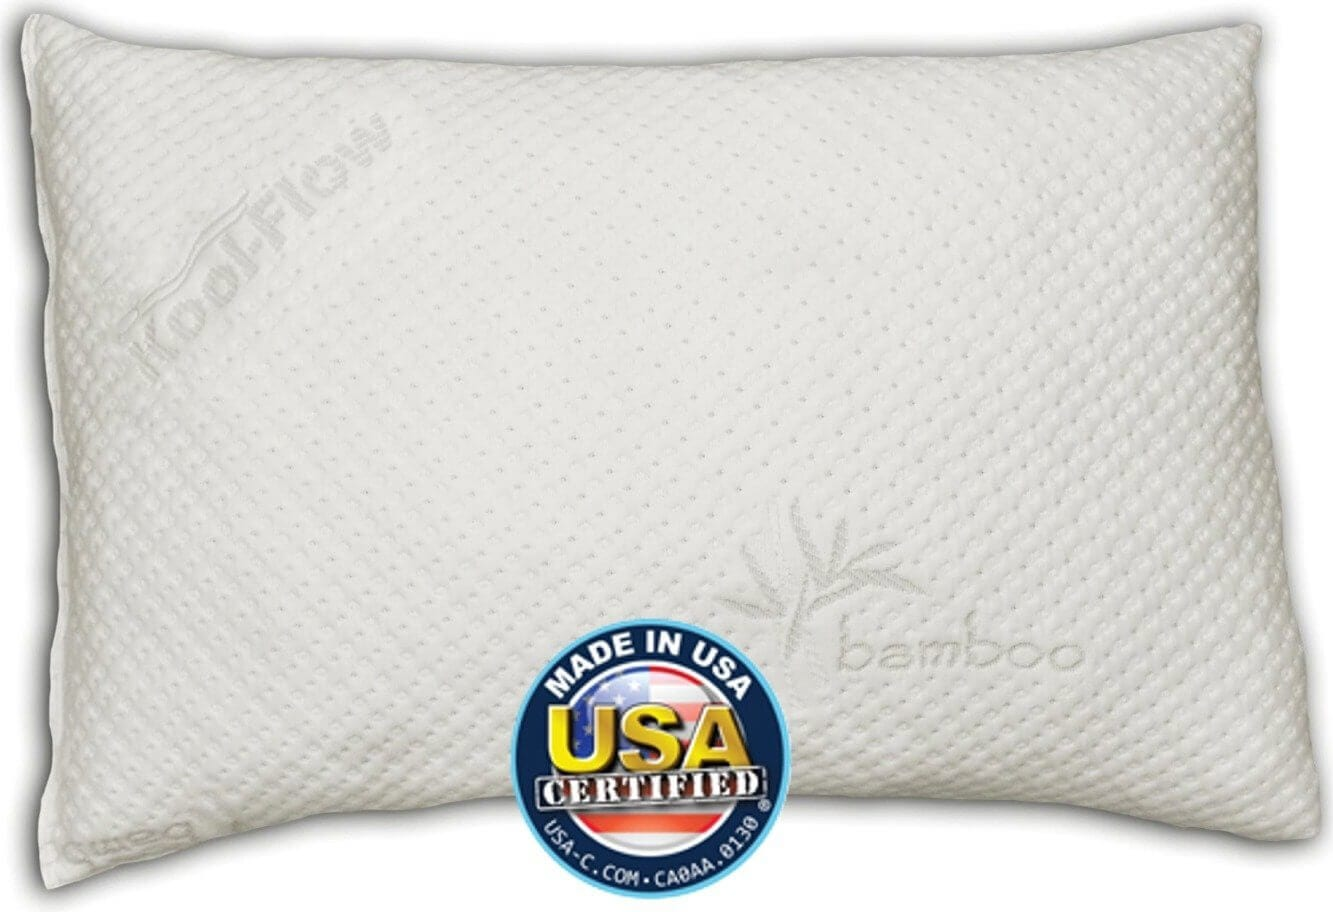 Snuggle-Pedic Ultra-Luxury Shredded Memory Foam Pillow Review